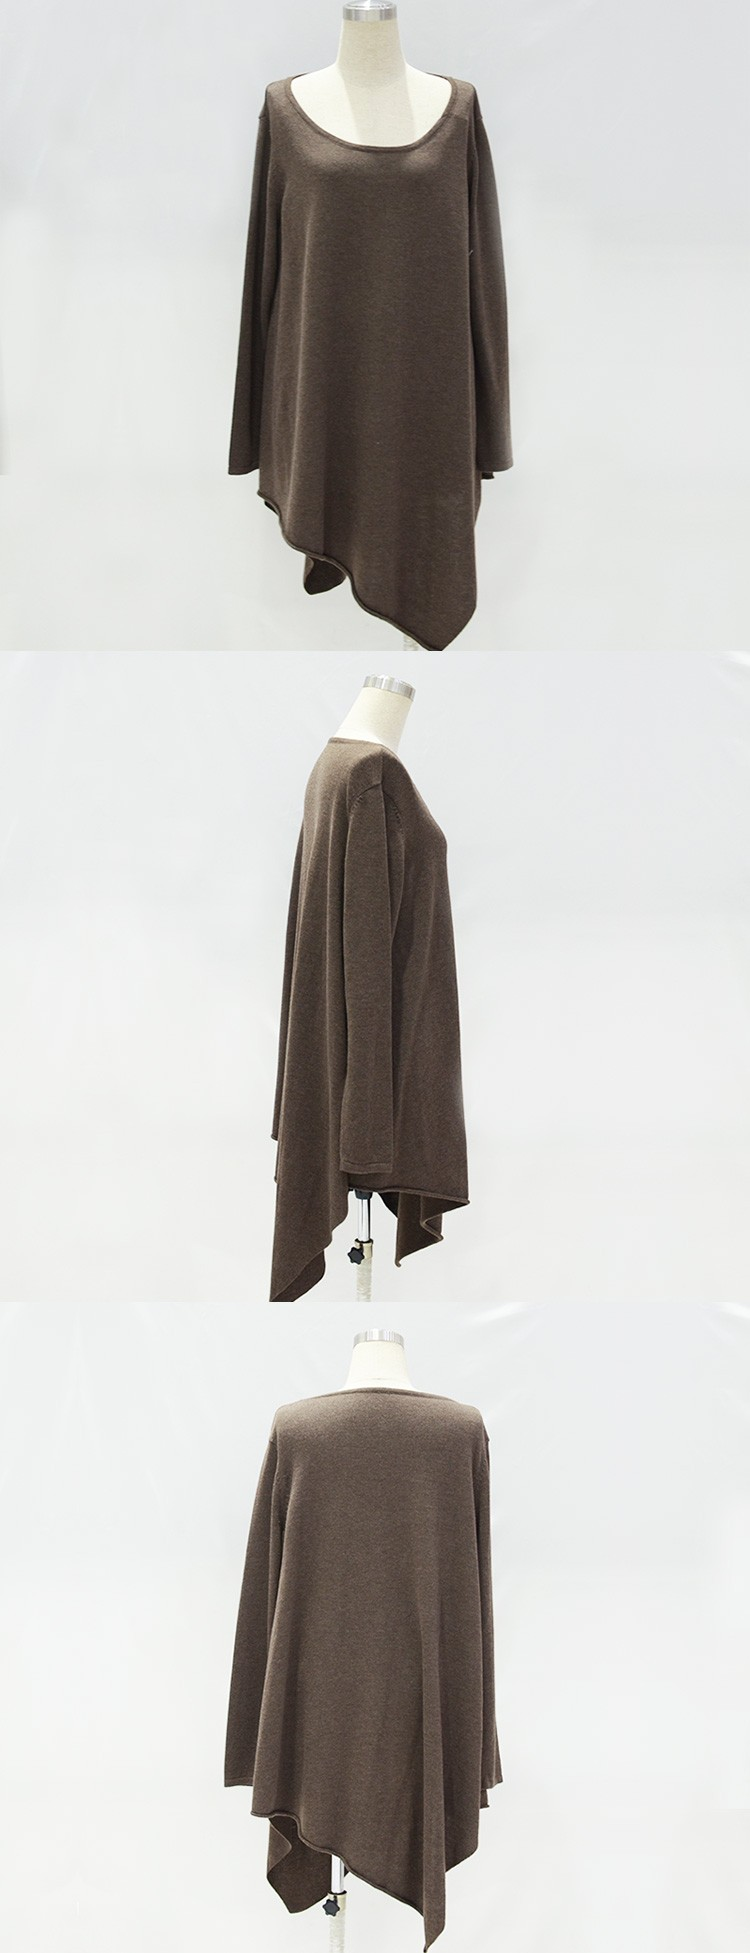 YEEL wholesale products classic flight knitting Anti-Pilling brown wool poncho